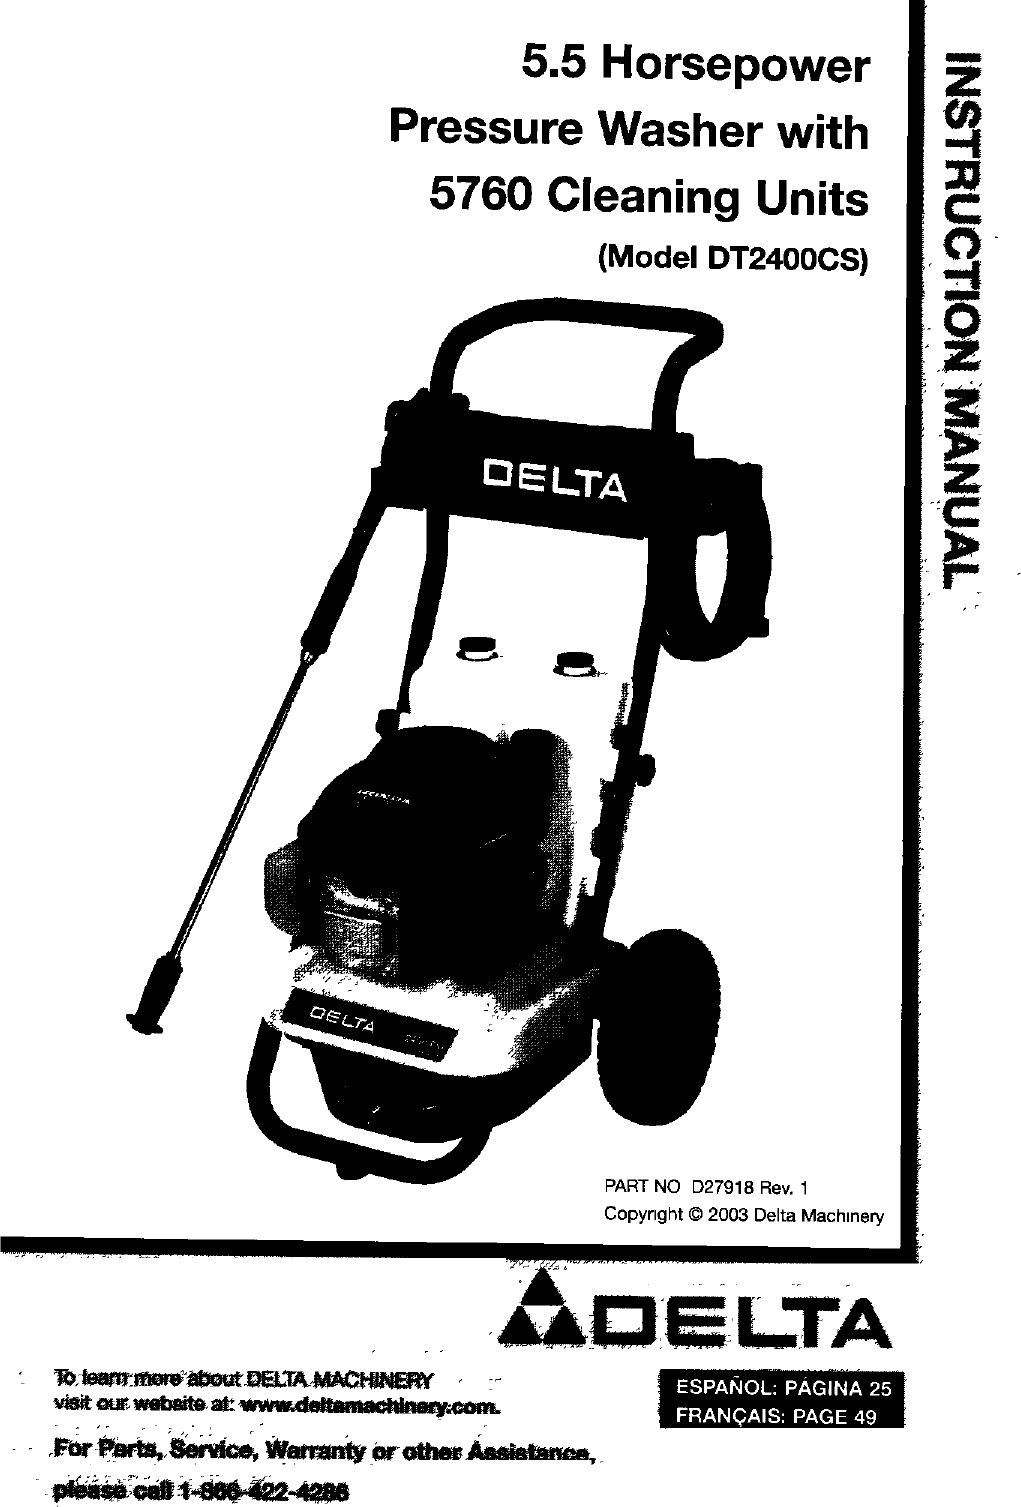 Delta DT2400CS User Manual PRESSURE WASHER Manuals And